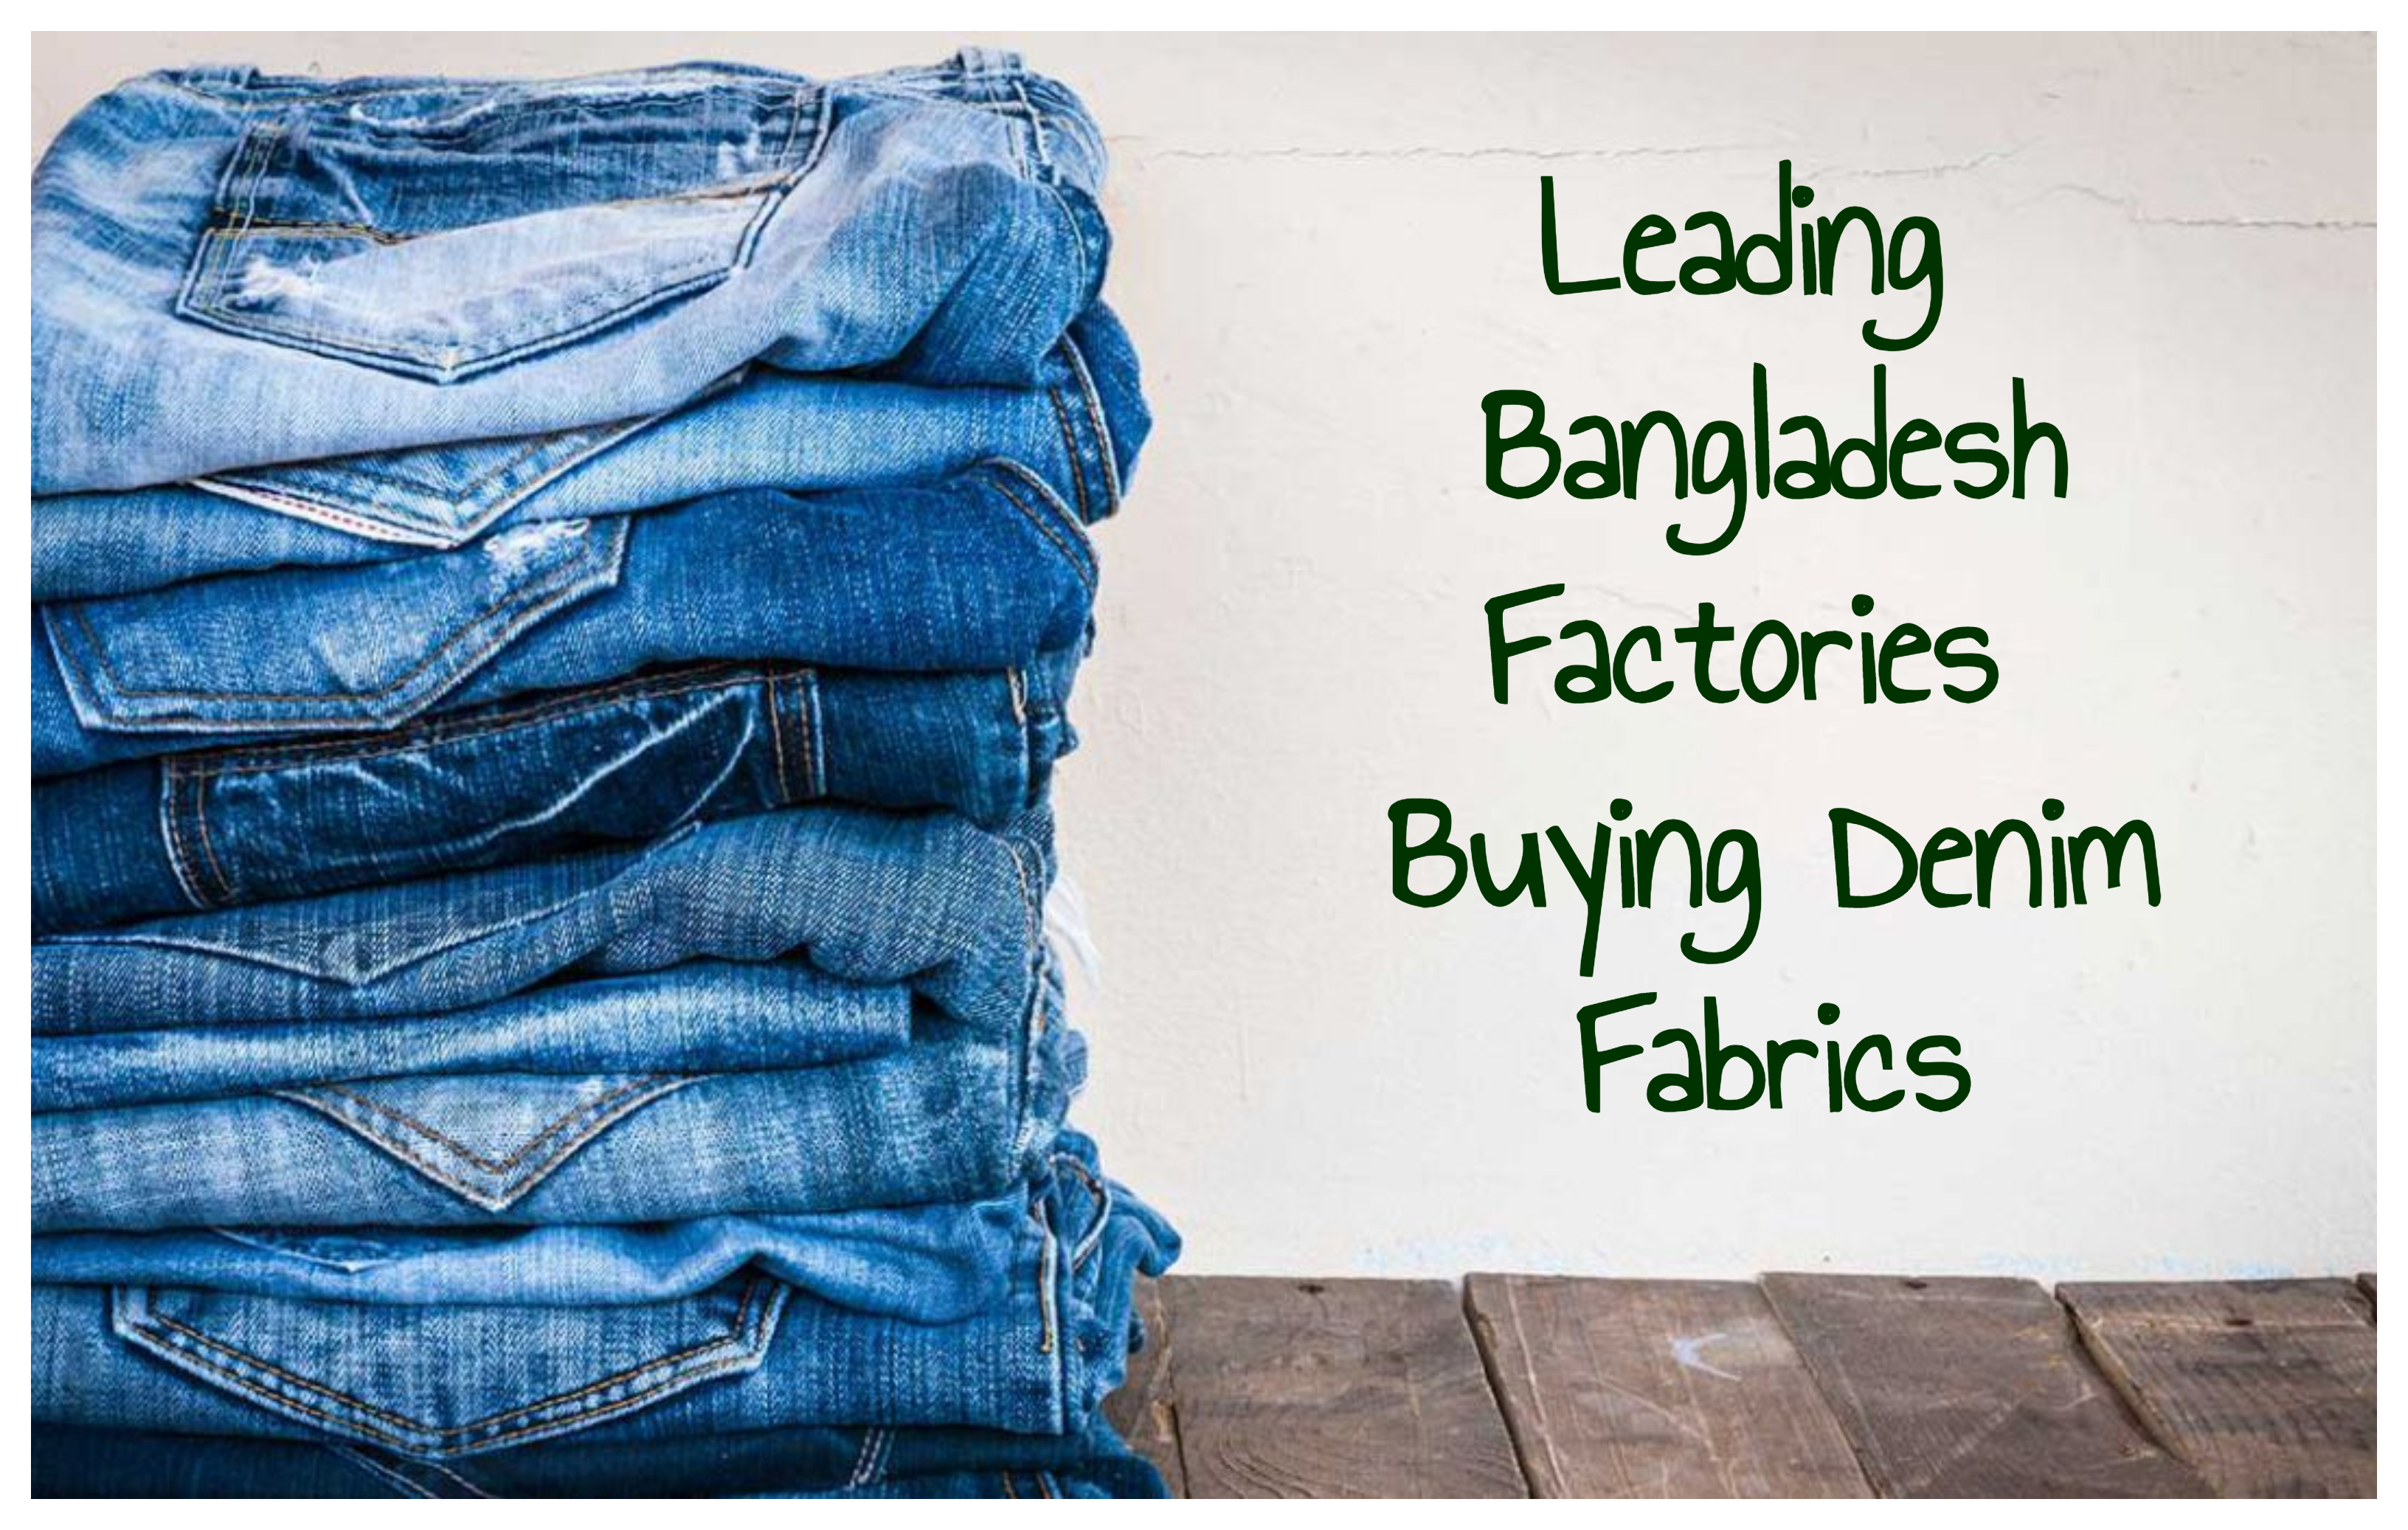 Leading Bangladesh Factories Buying  Denim Fabrics